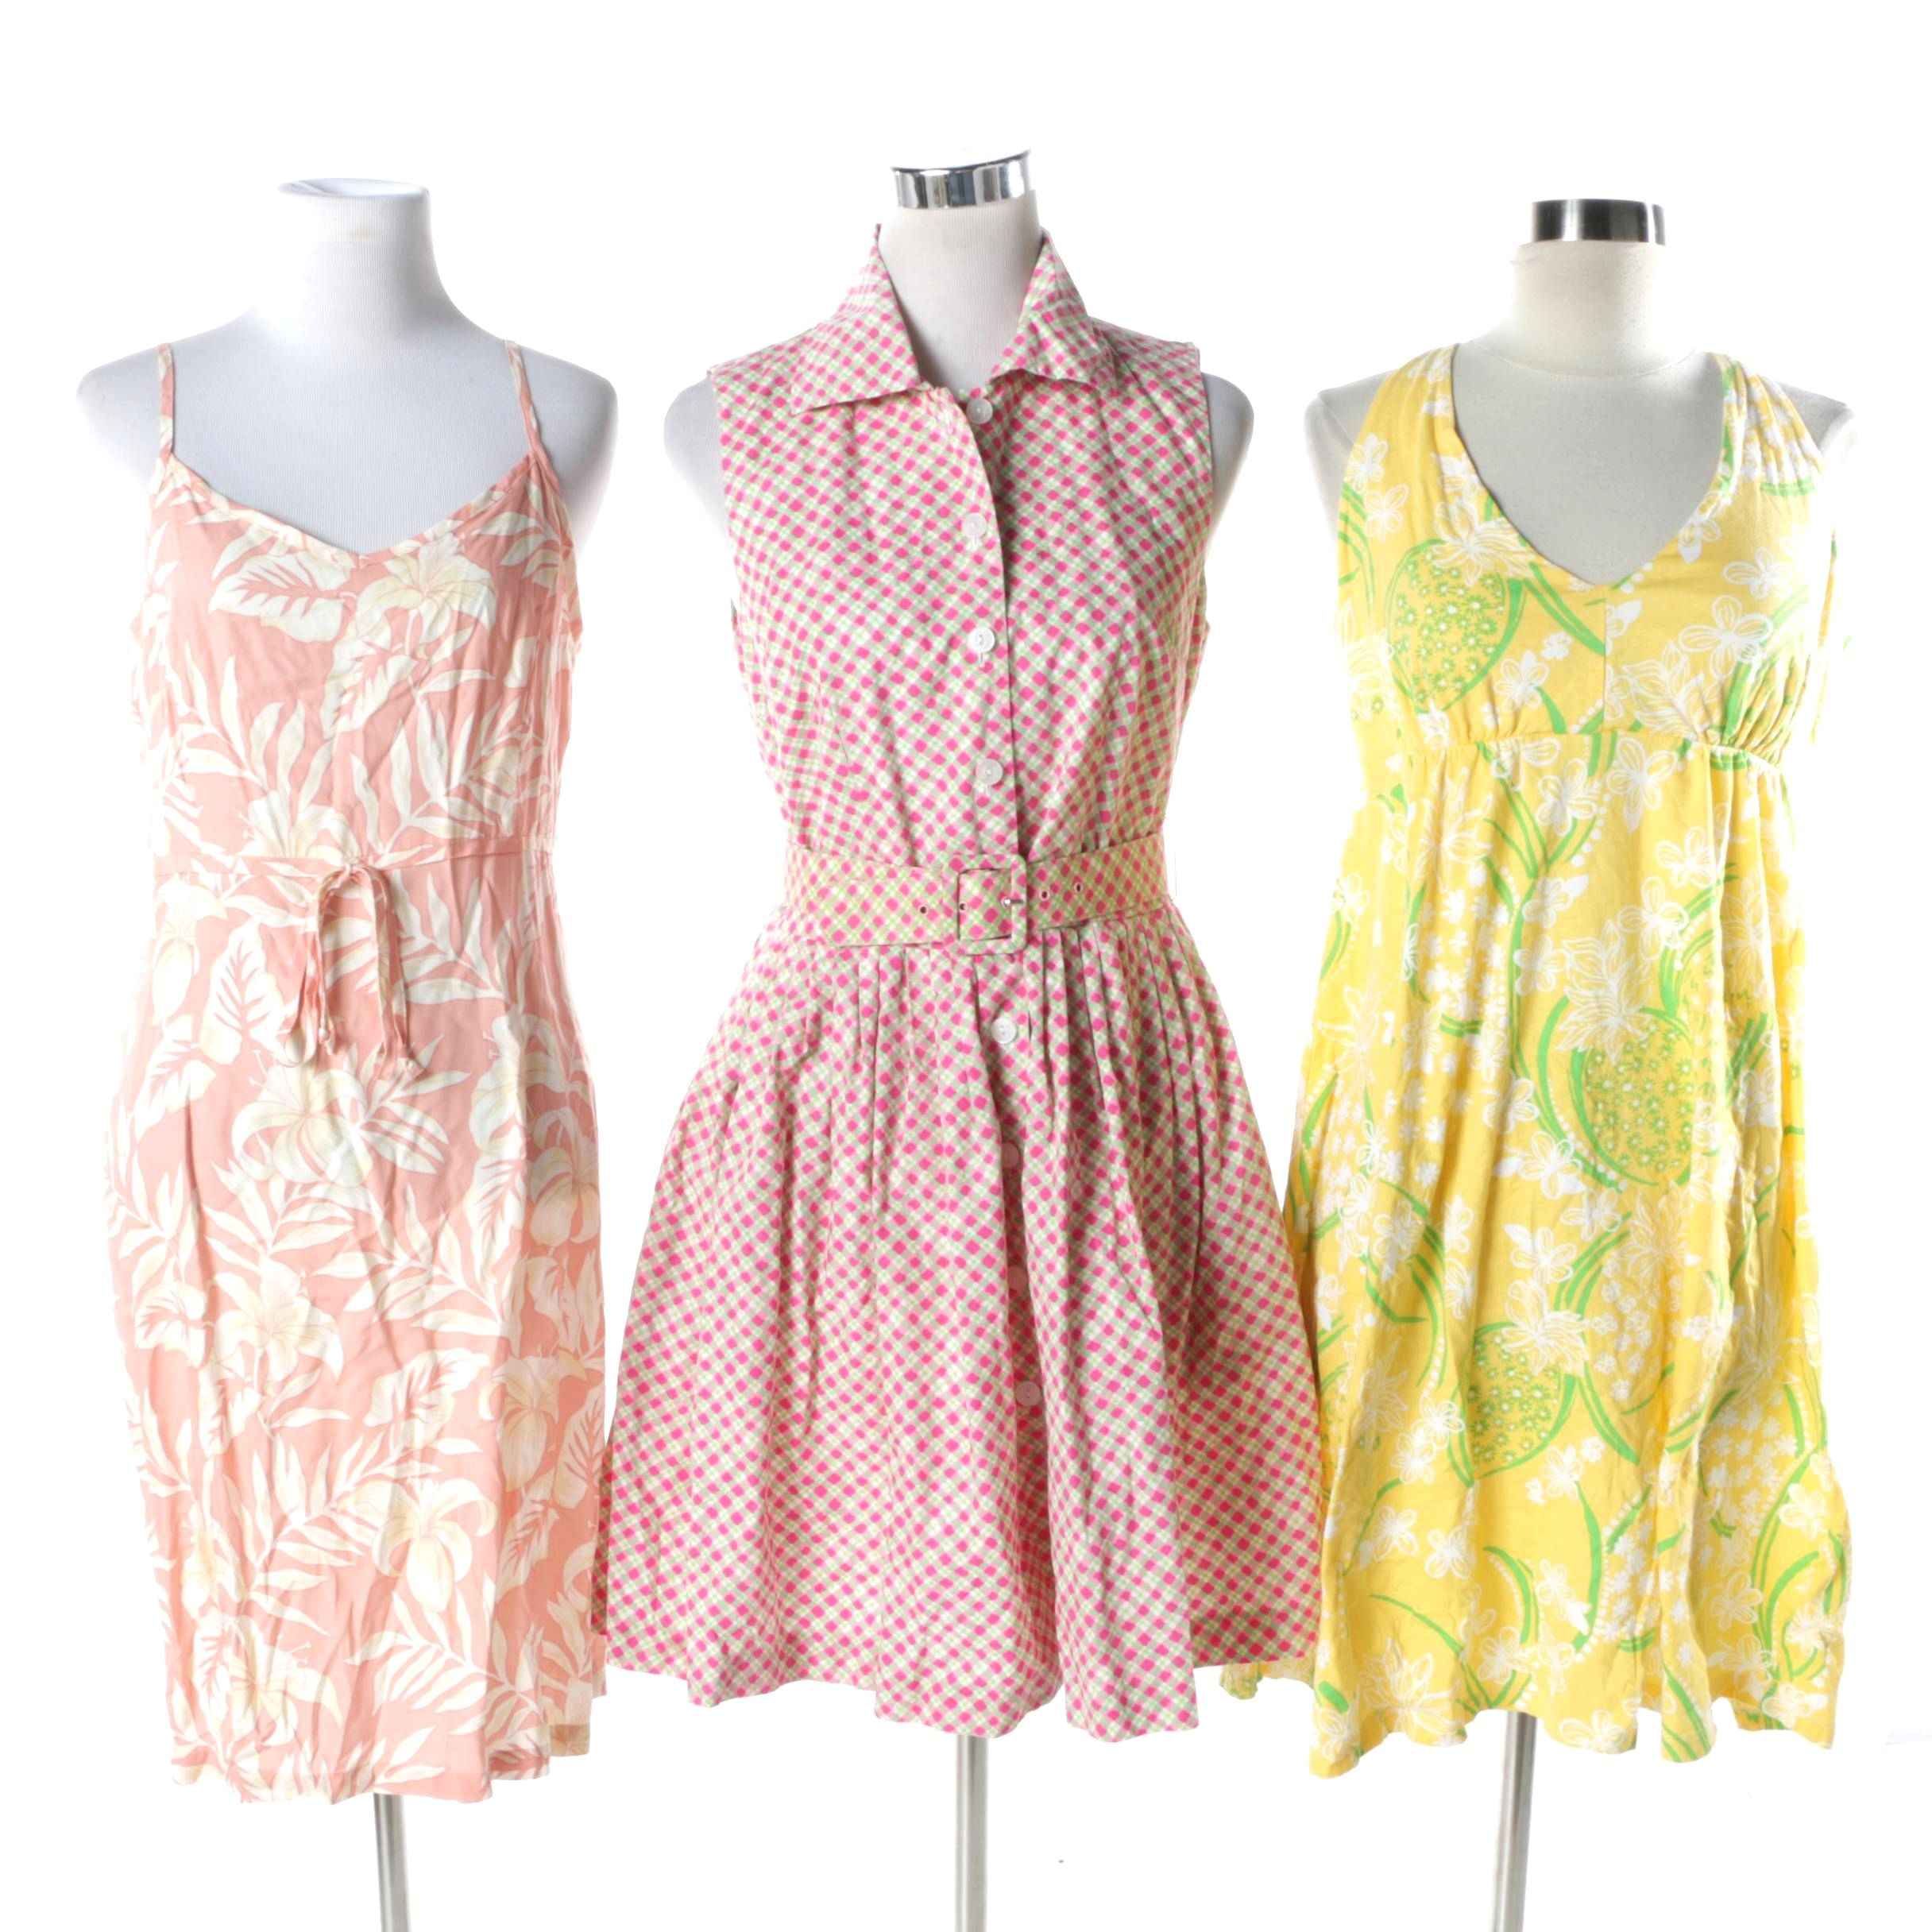 Women's Printed Summer Dresses Including Lilly Pulitzer